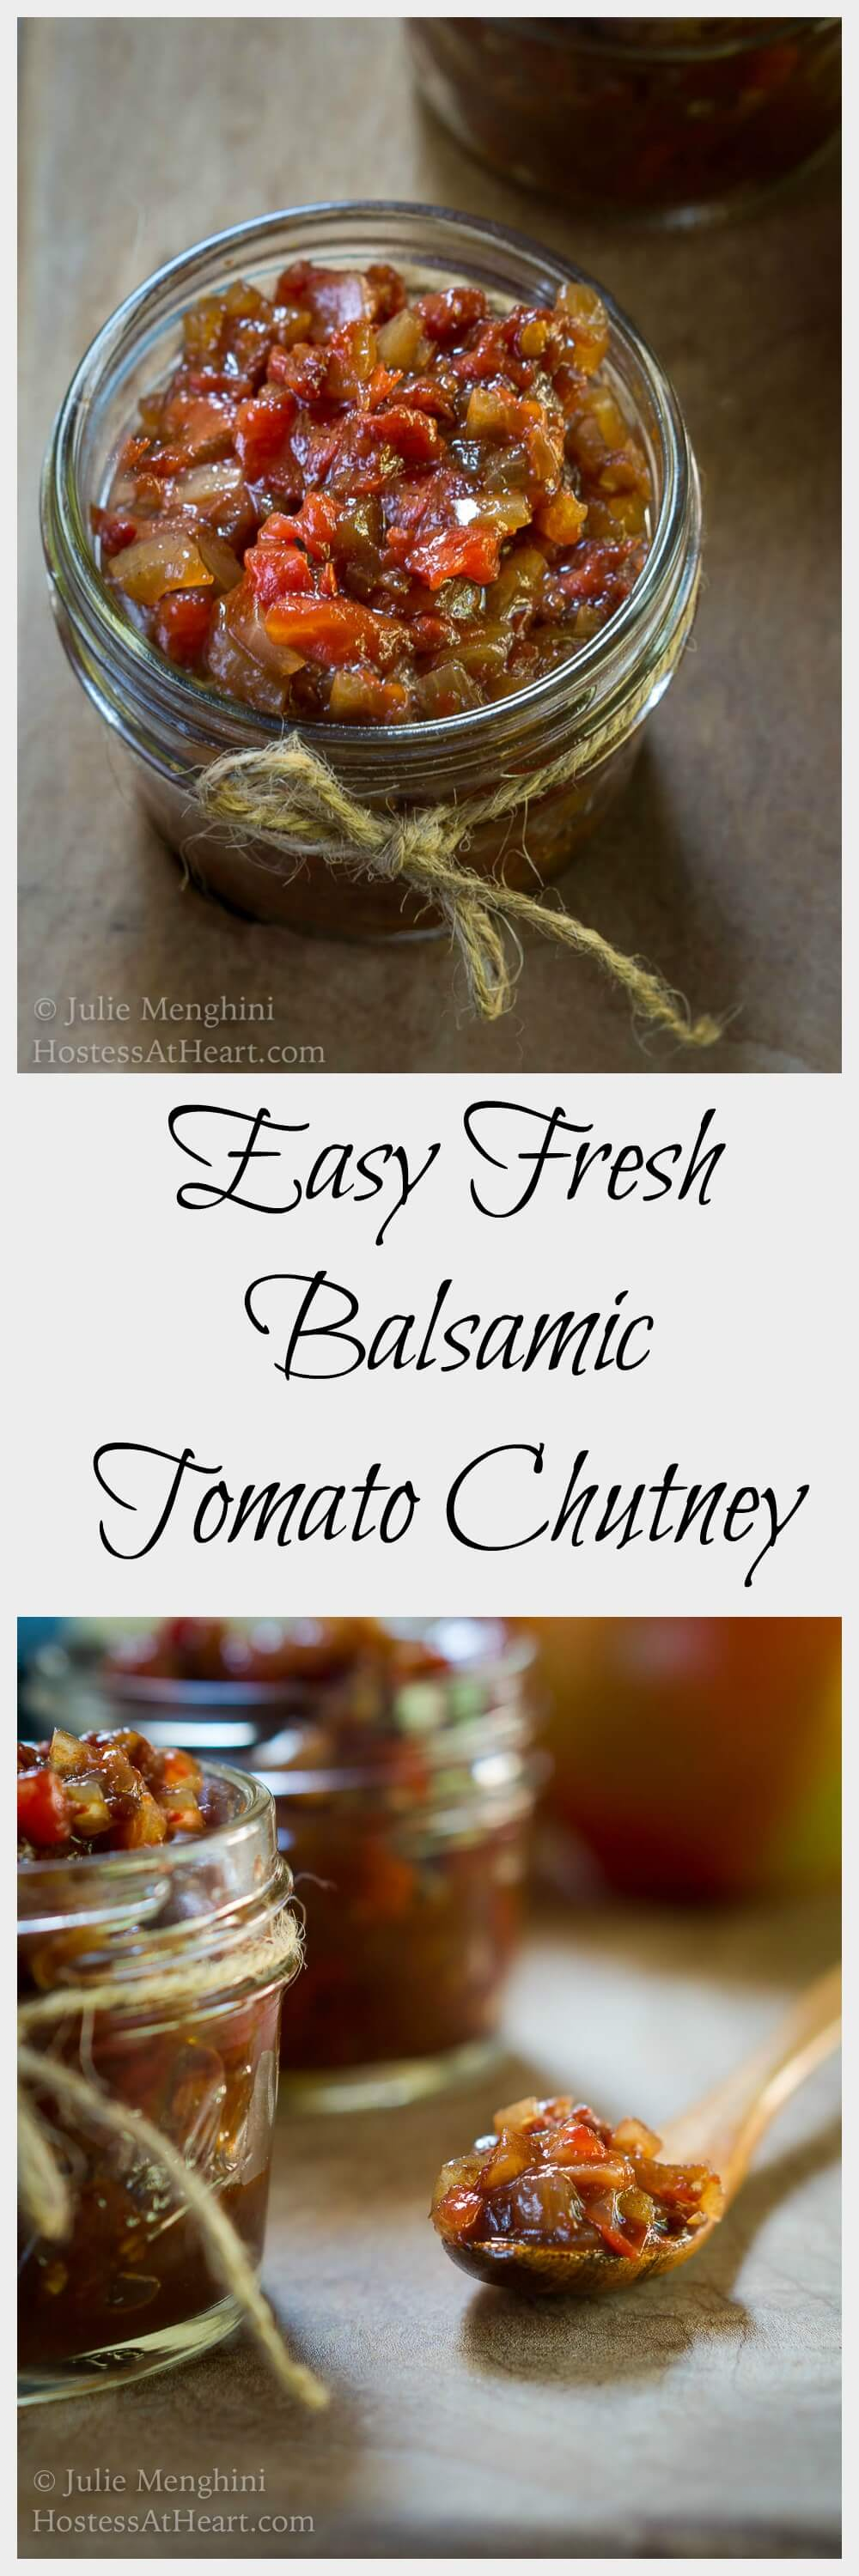 This Easy Fresh Balsamic Tomato Chutney recipe tastes like Summer in a bowl. It's perfect as an appetizer or as a sauce over grilled seafood or chicken. | HostessAtHeart.com